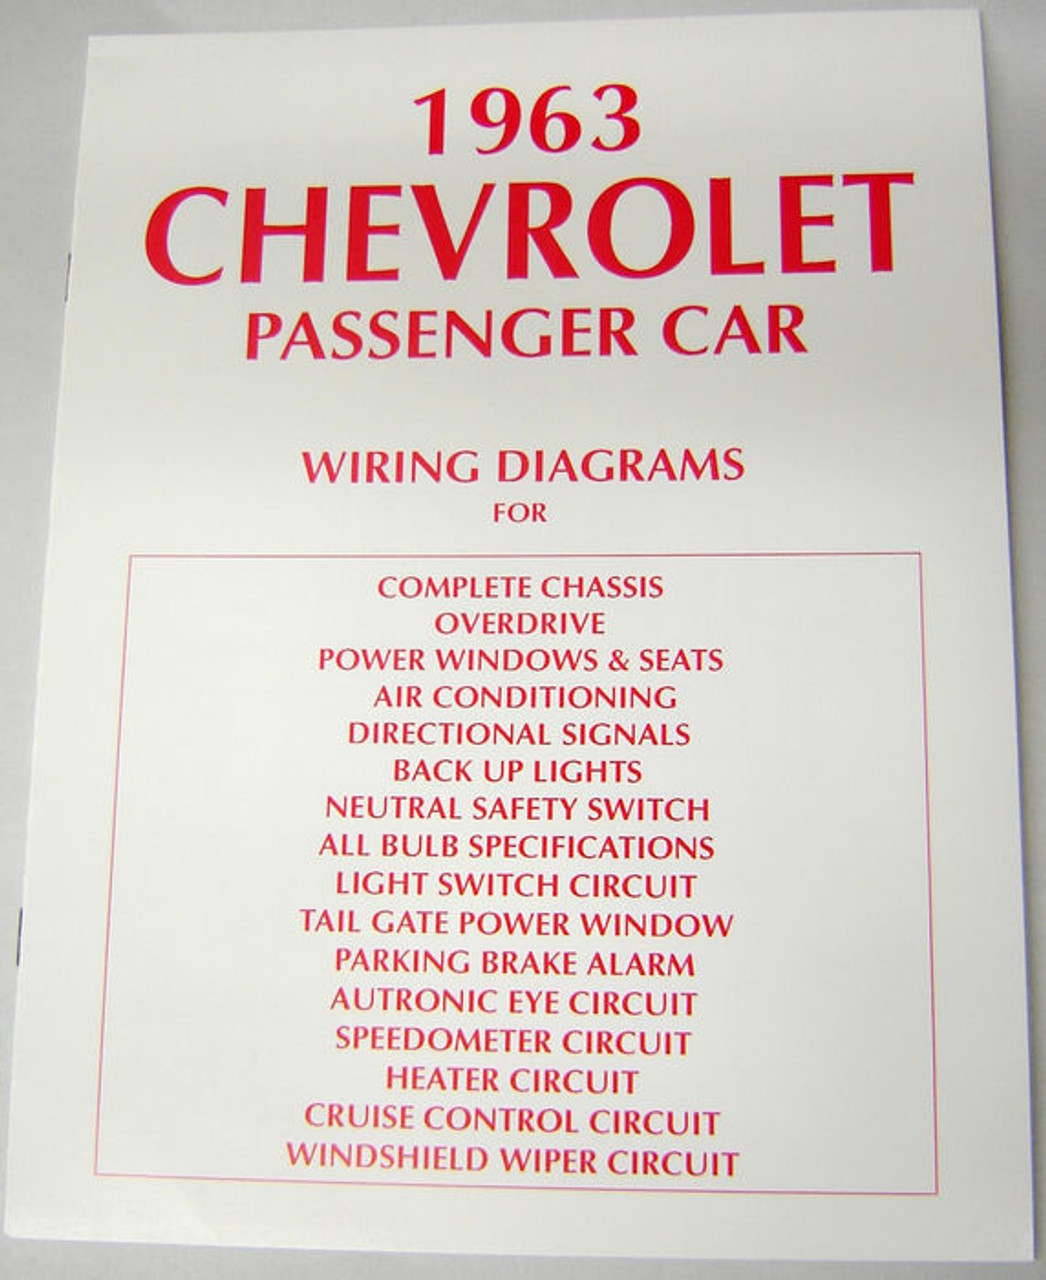 63 chevy impala electrical wiring diagram manual 1963 i 5 classic 63 chevy impala electrical wiring diagram manual 1963 cheapraybanclubmaster Choice Image